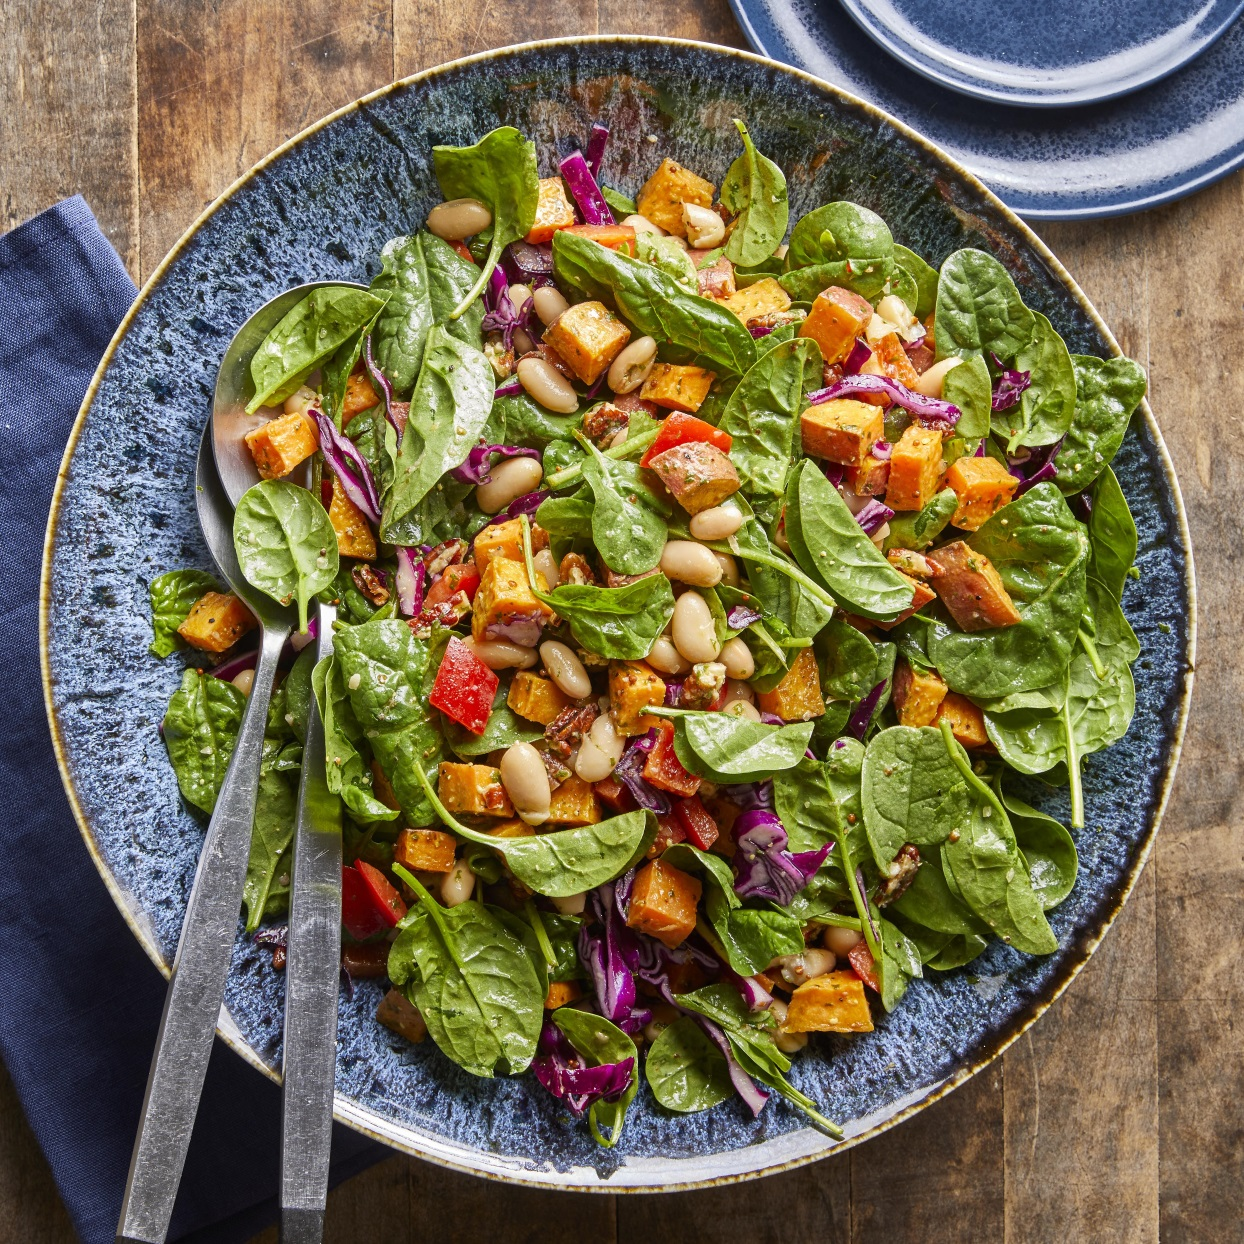 Roasted sweet potatoes are paired with spinach, cabbage and white beans and tossed together with a bright basil dressing in this healthy main dish salad.